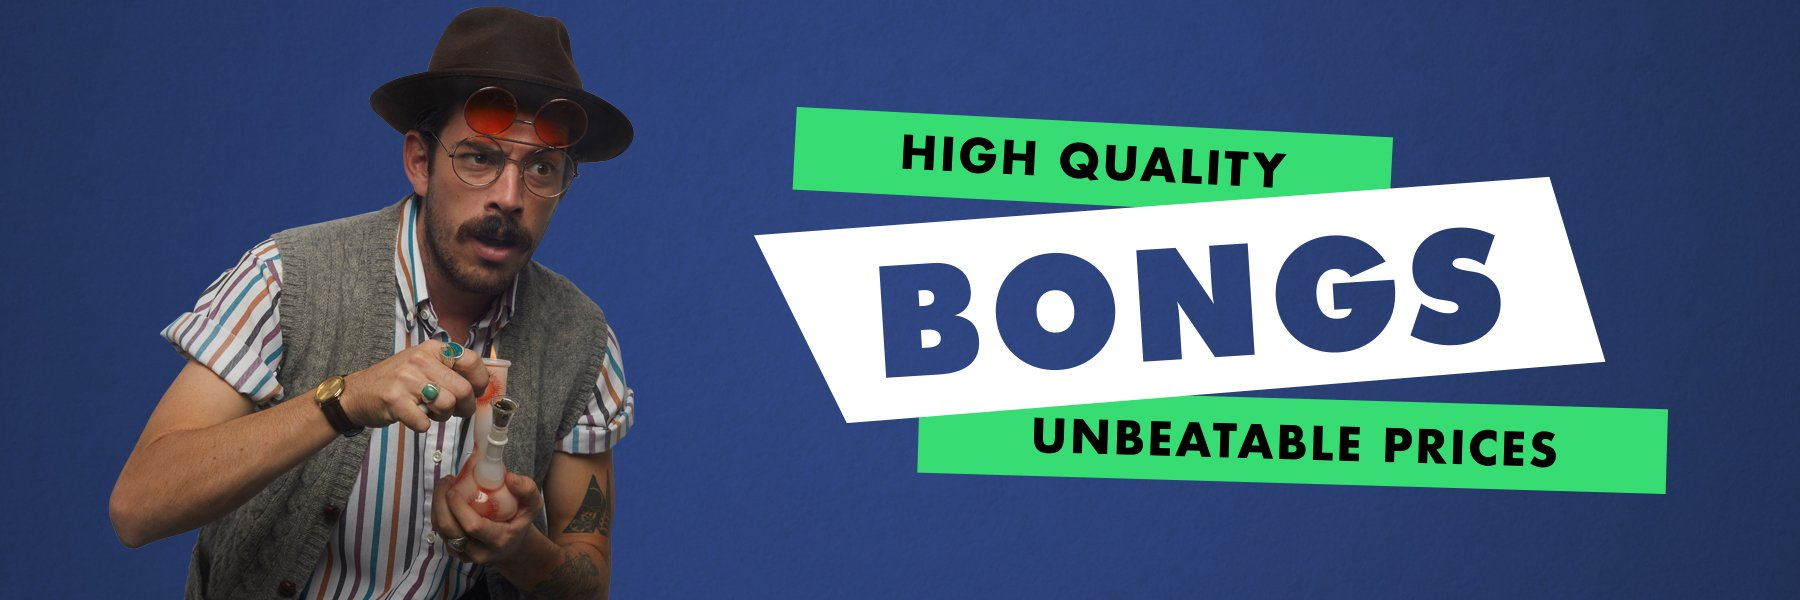 Straight Tube Bongs - Best water bongs online